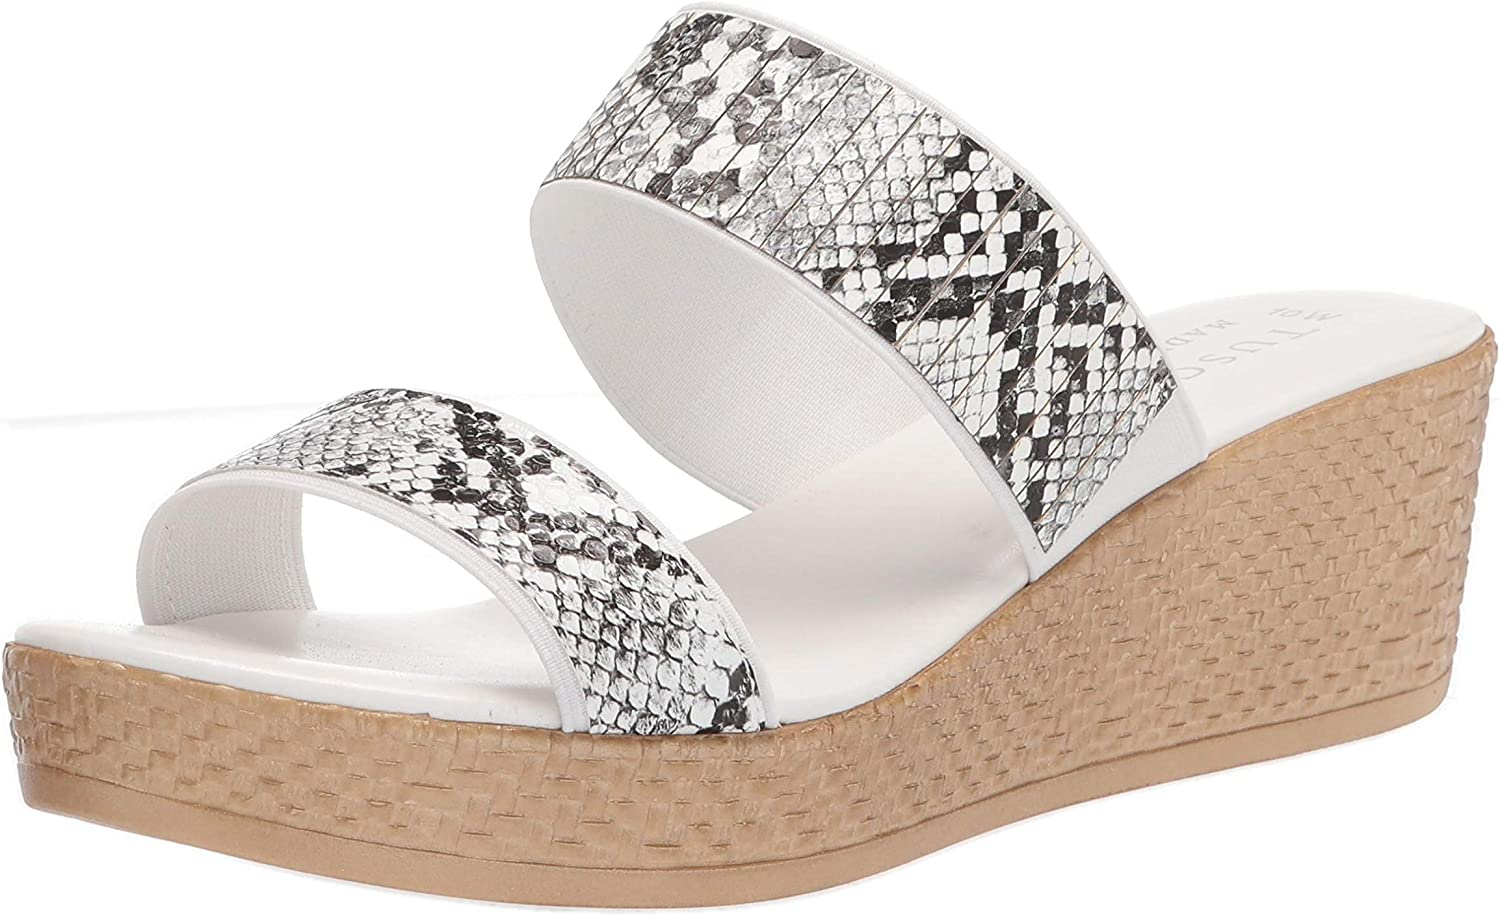 Tuscany Max 46% OFF Cheap super special price Women's Wedge Sandal